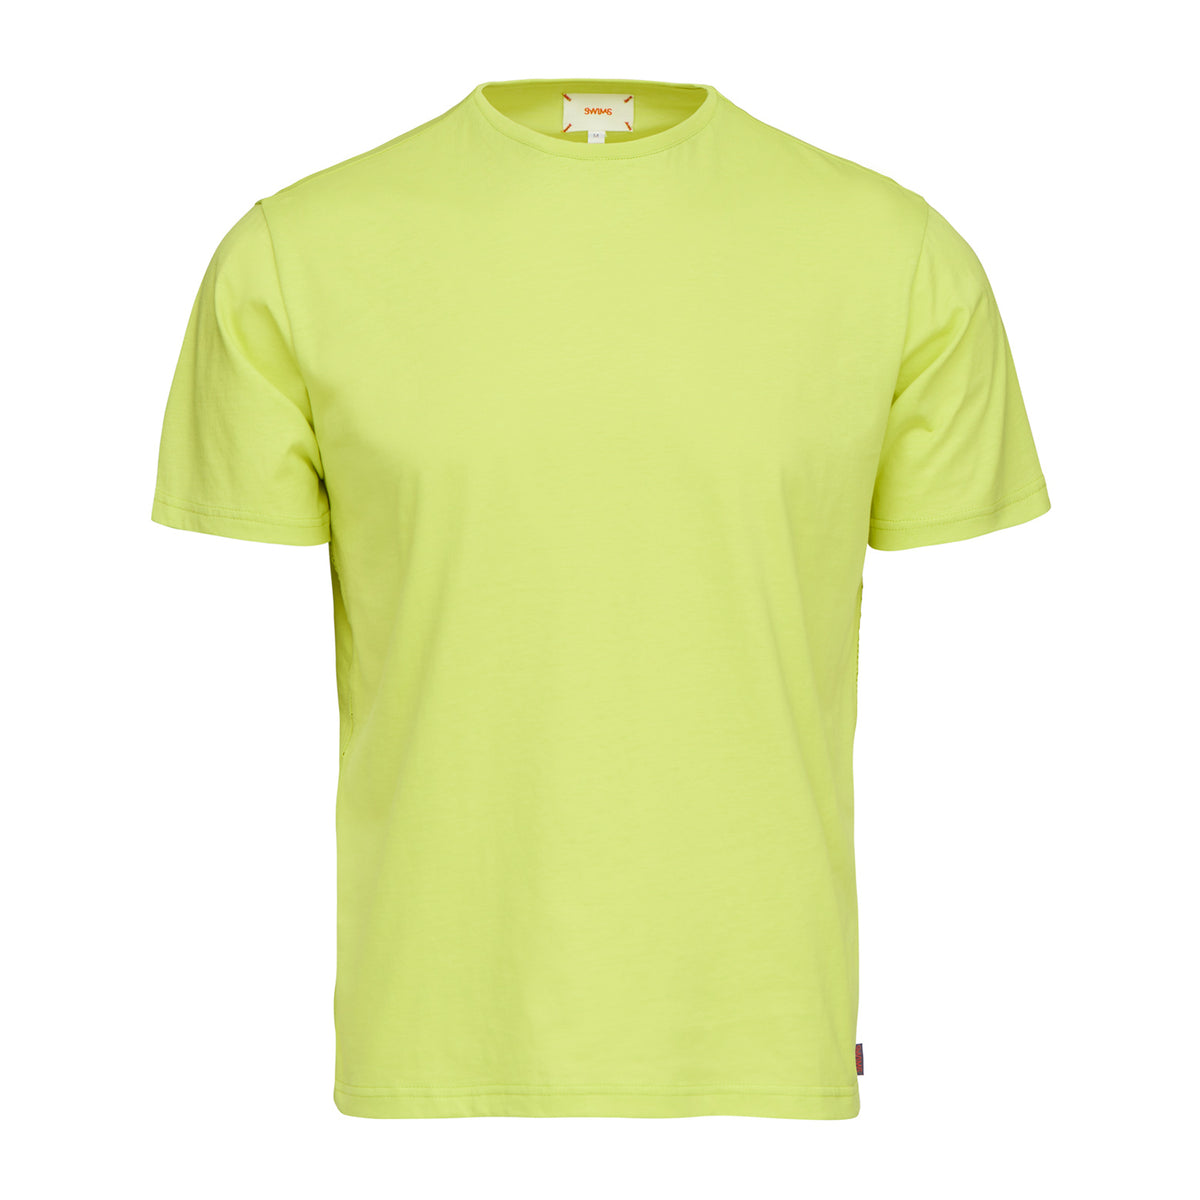 Breeze T-Shirt - background::white,variant::Limeade